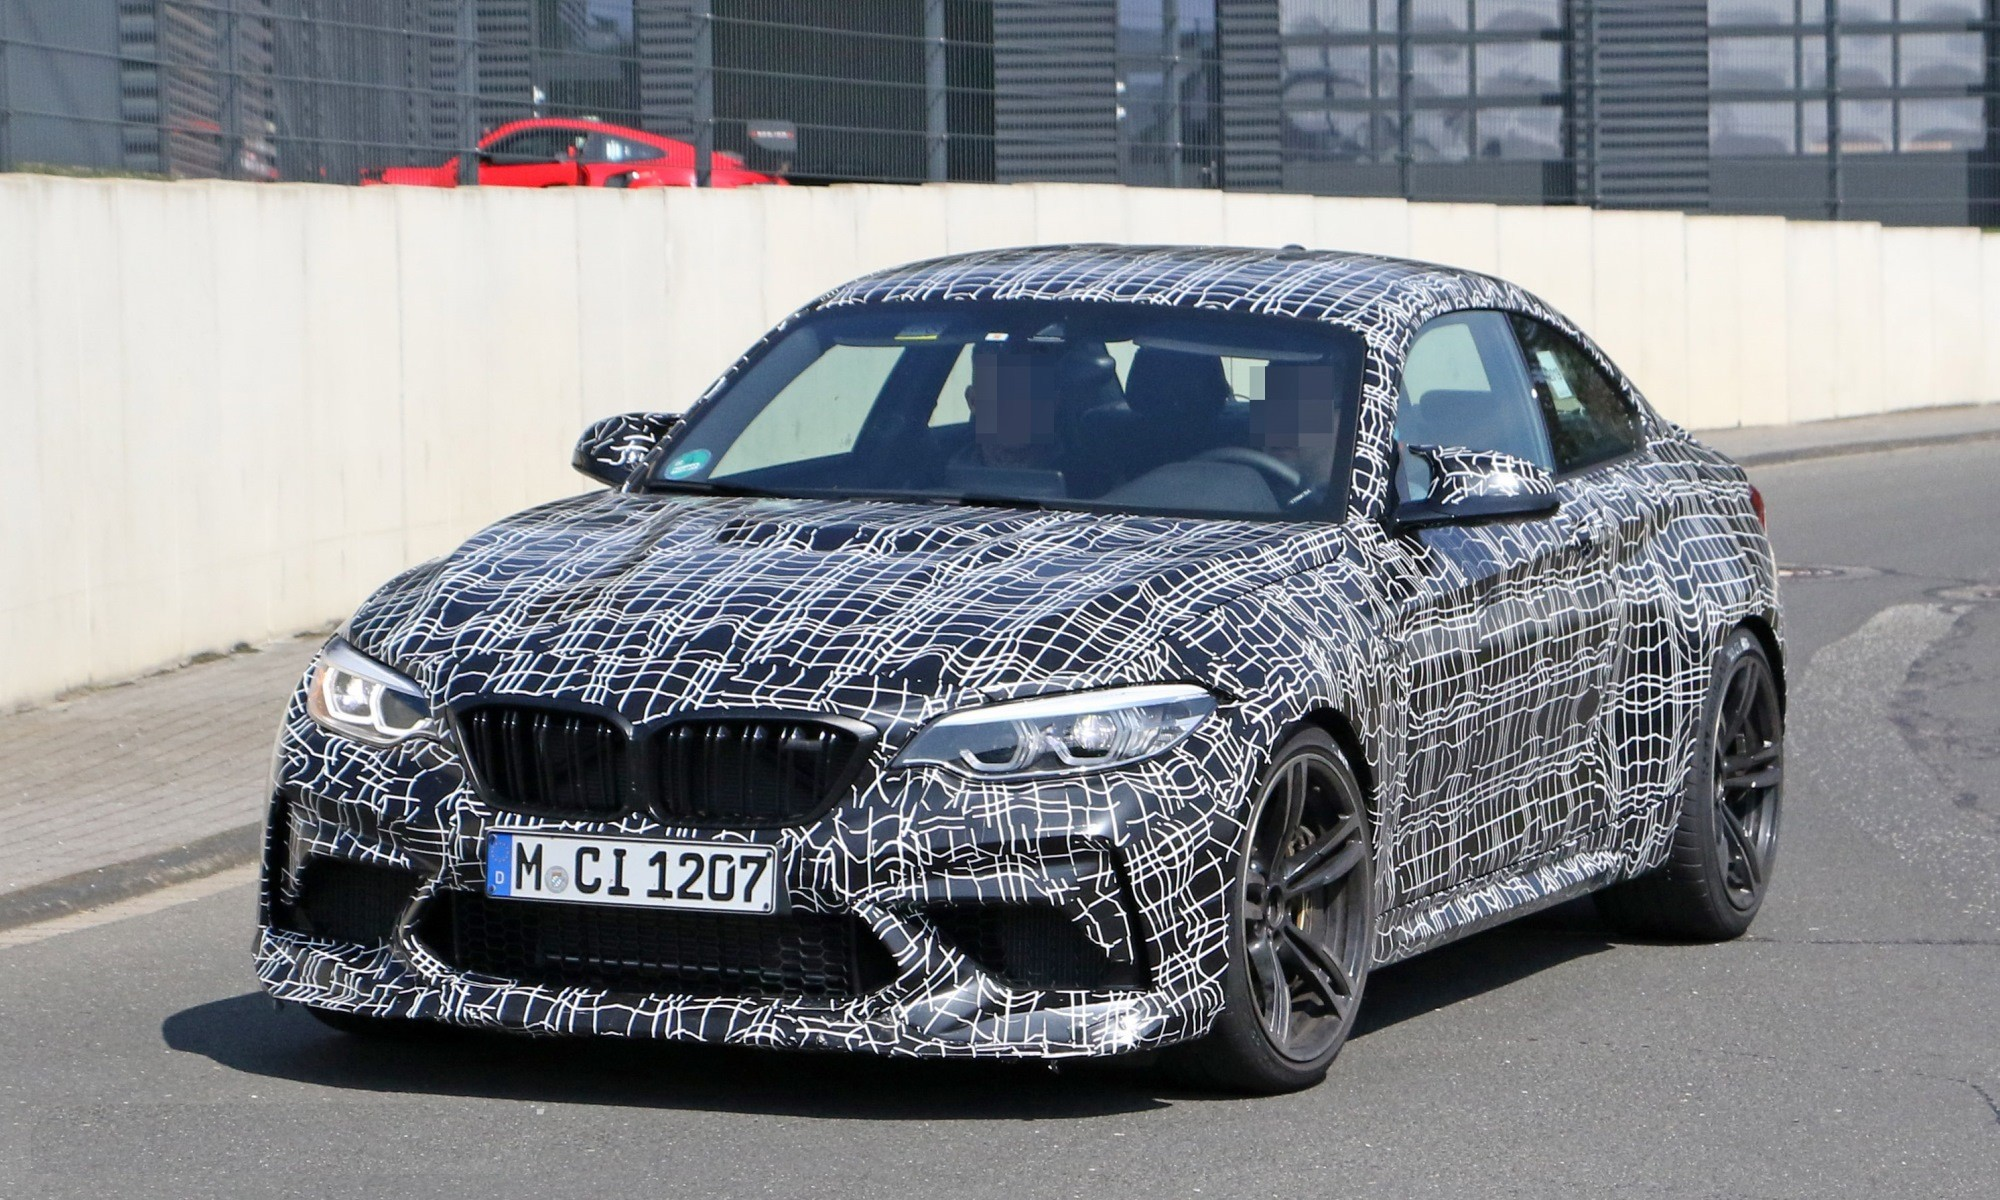 BMW M2 CS spotted